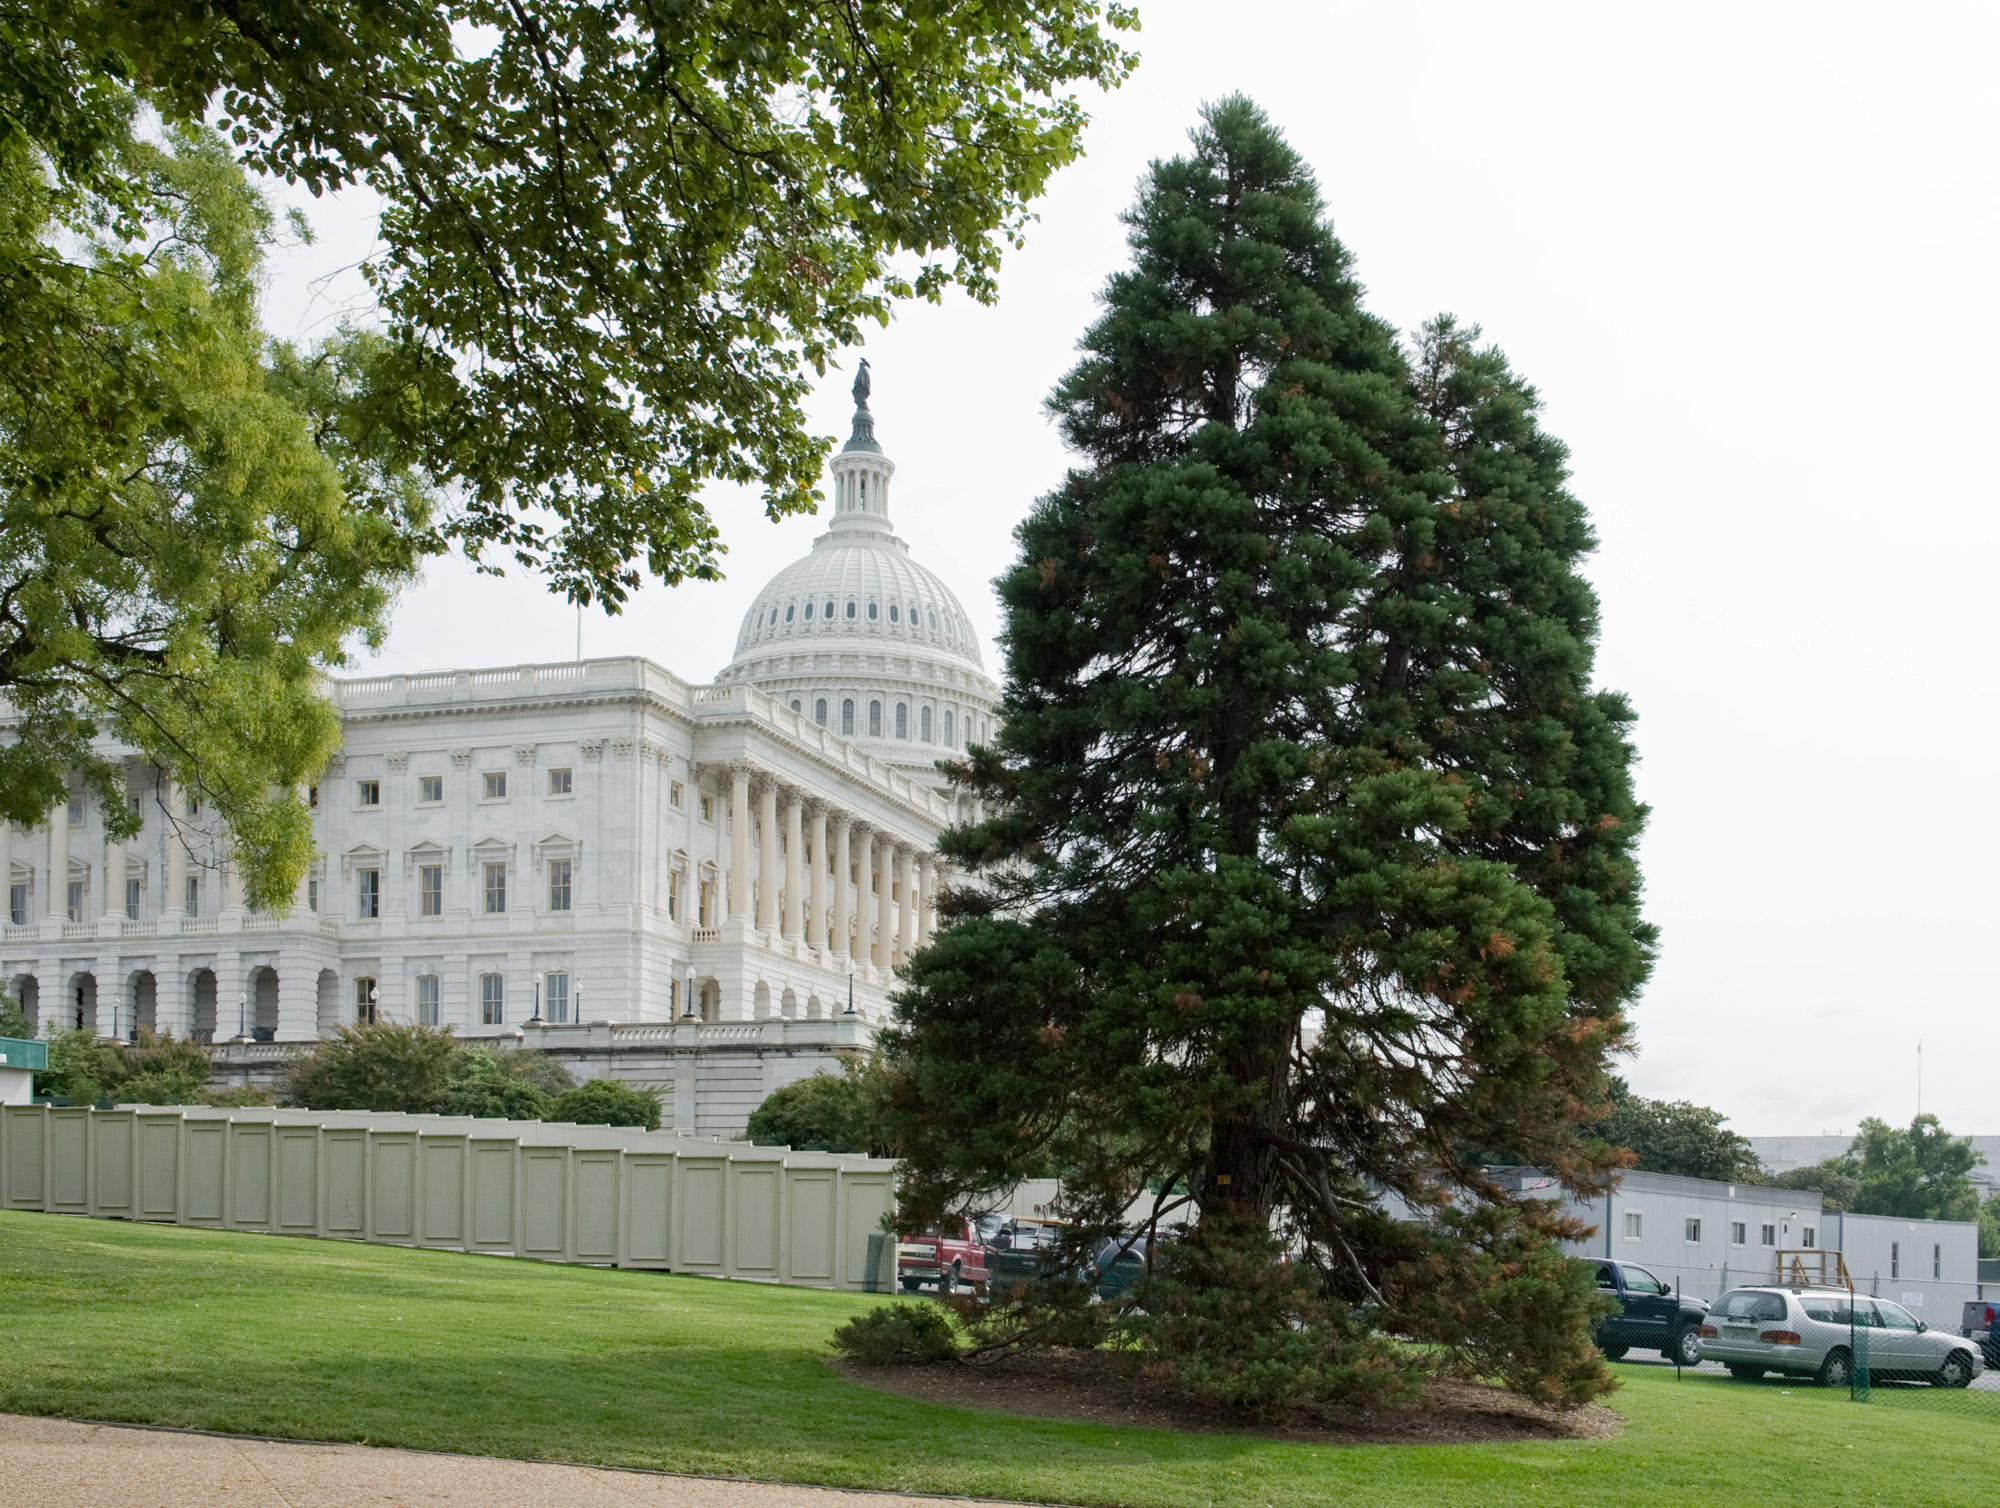 Giant Sequoia with the U.S. Capitol in the background.